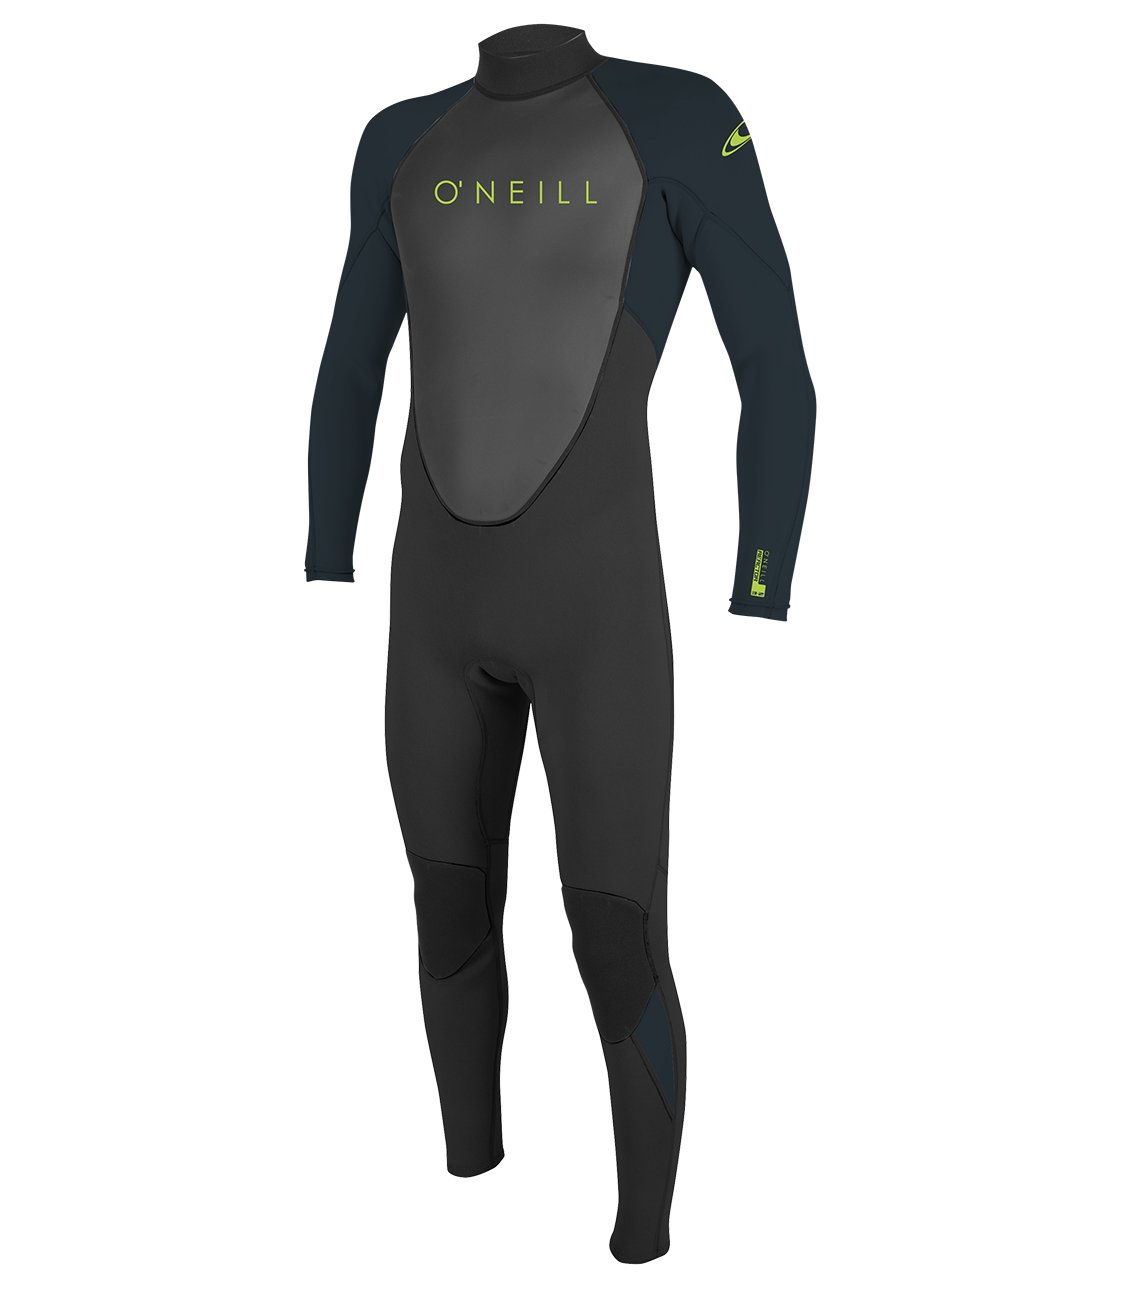 O'Neill Youth Reactor-2 3/2mm Back Zip Full Wetsuit, Black/Slate, 8